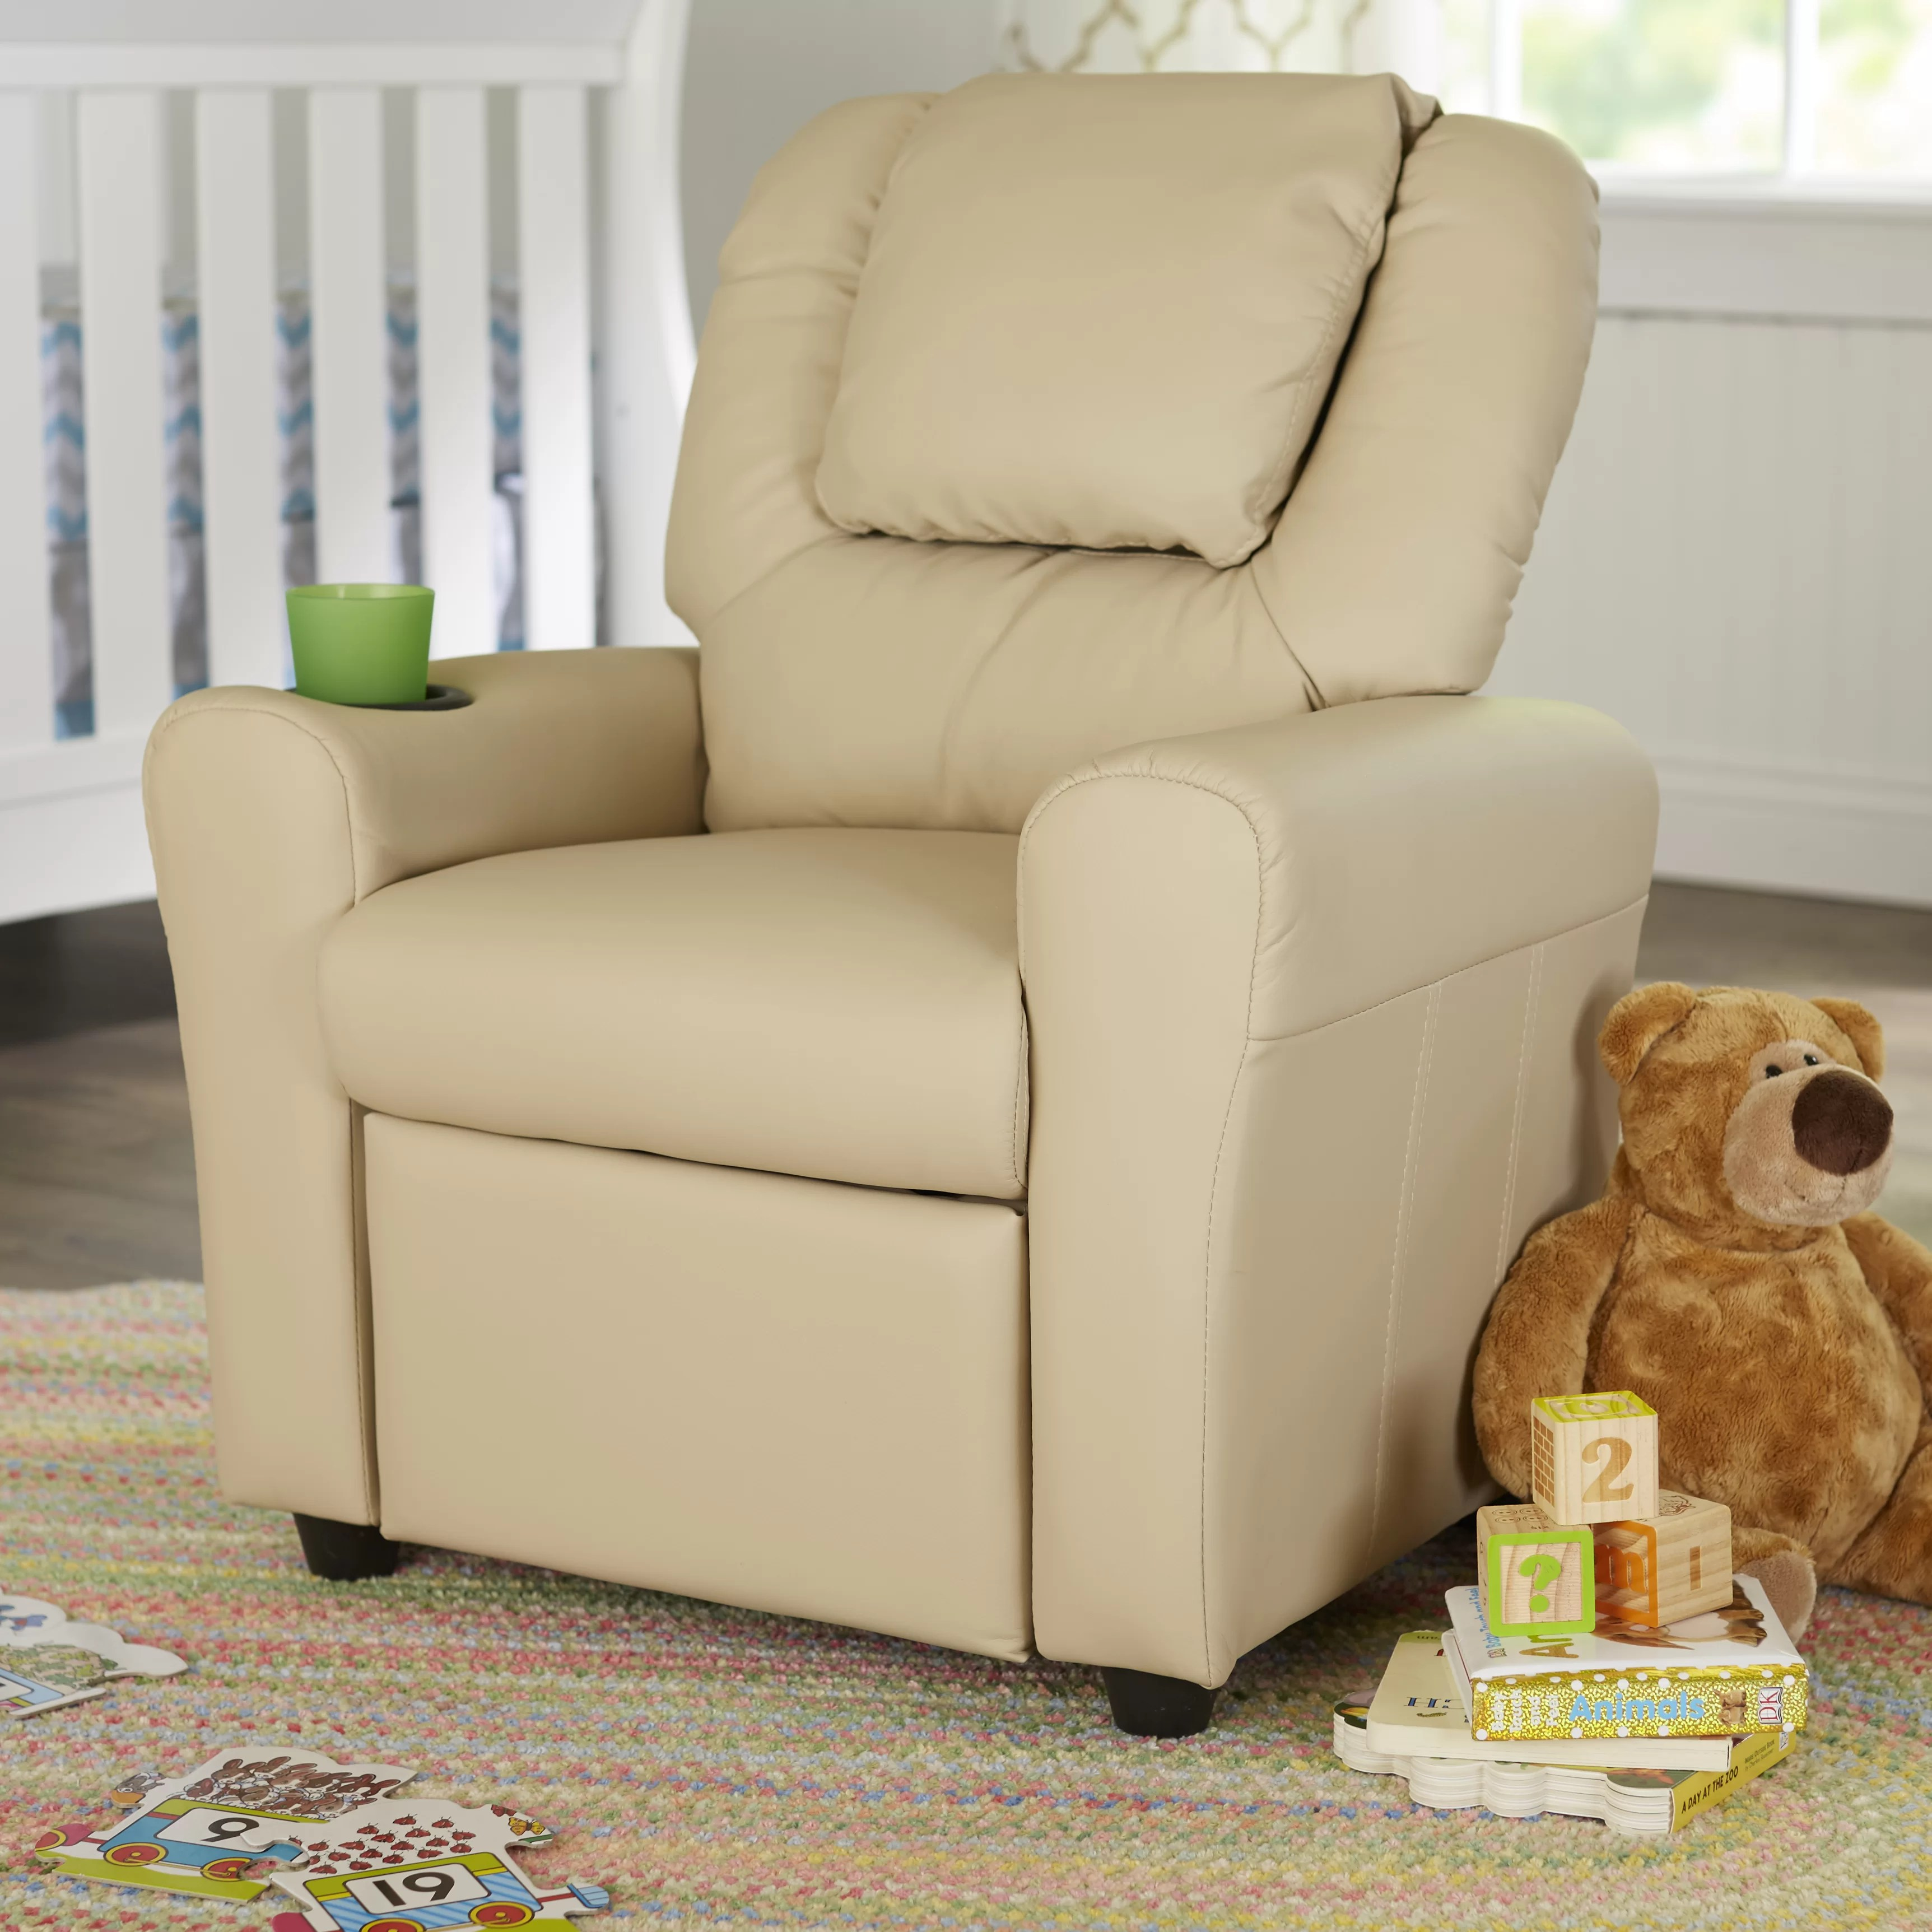 Monogrammed Toddler Chair Contemporary Personalized Kids Recliner With Cup Holder